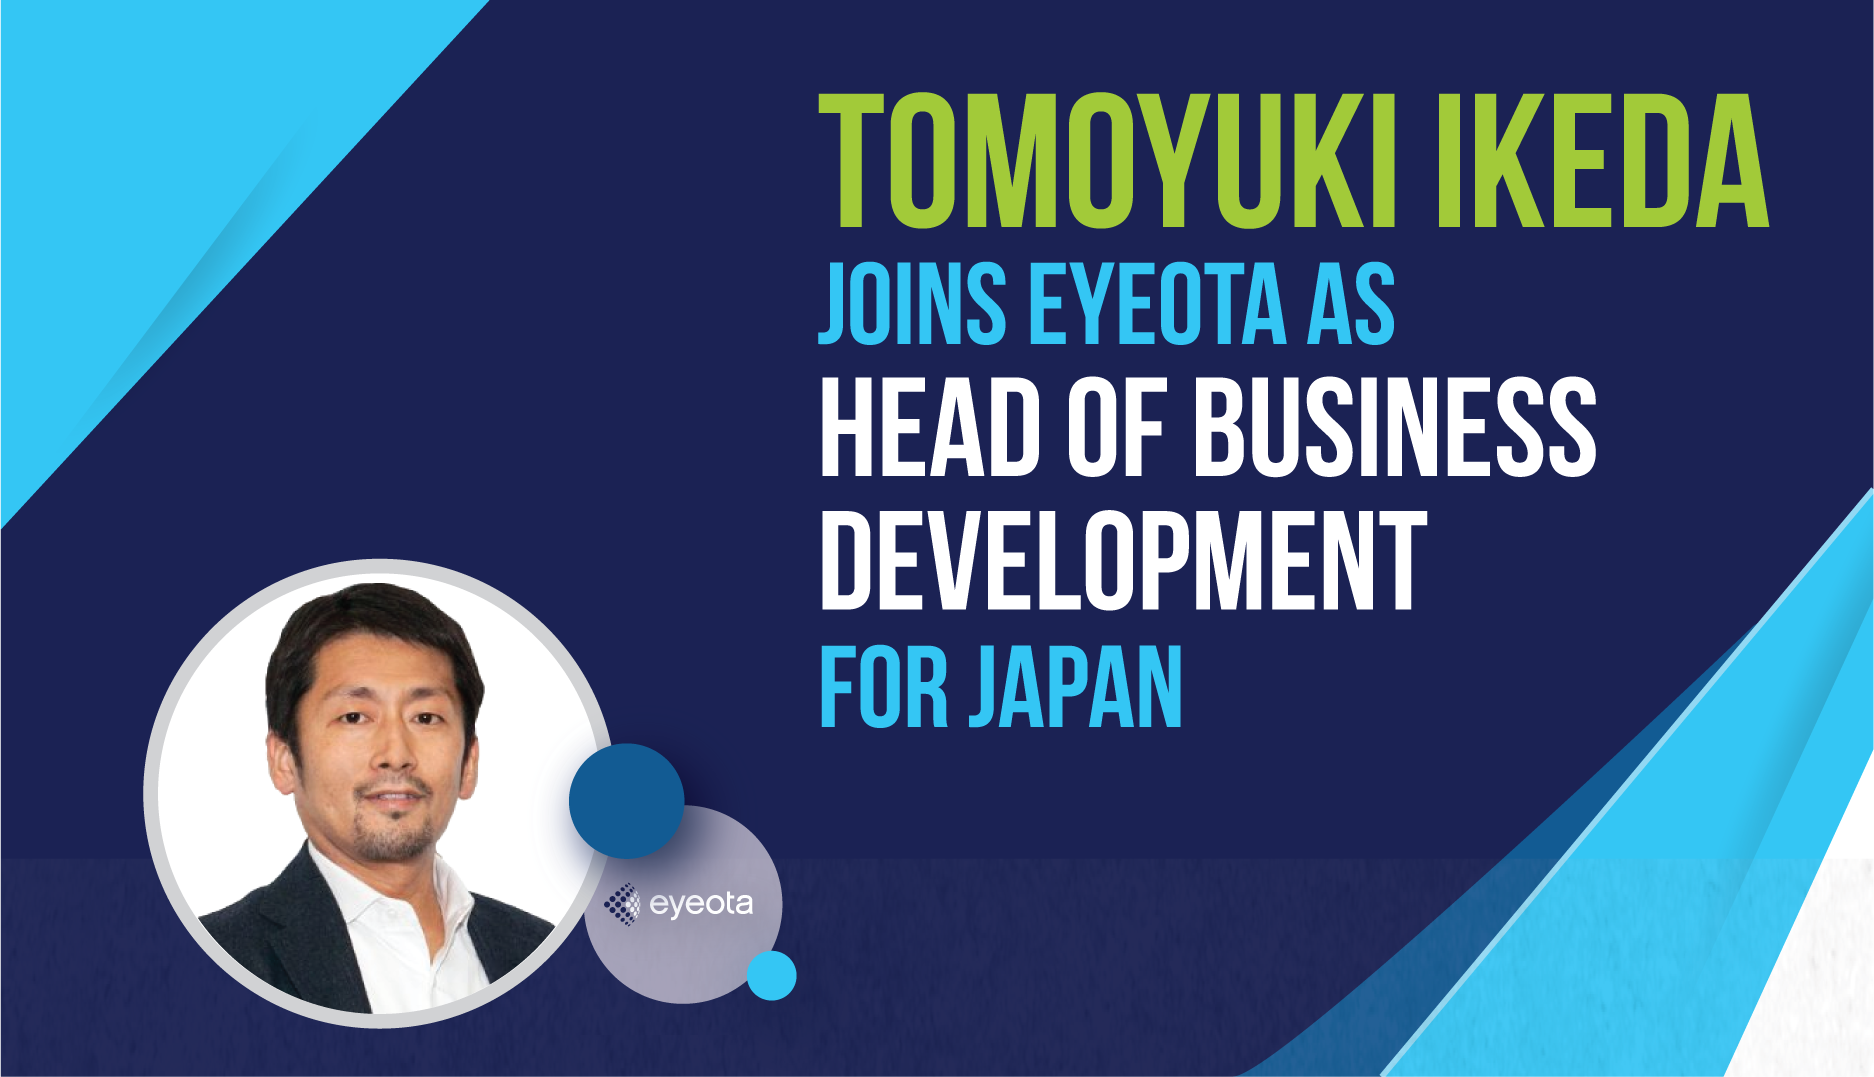 Tomoyuki Ikeda Joins Eyeota as Head of Business Development for Japan